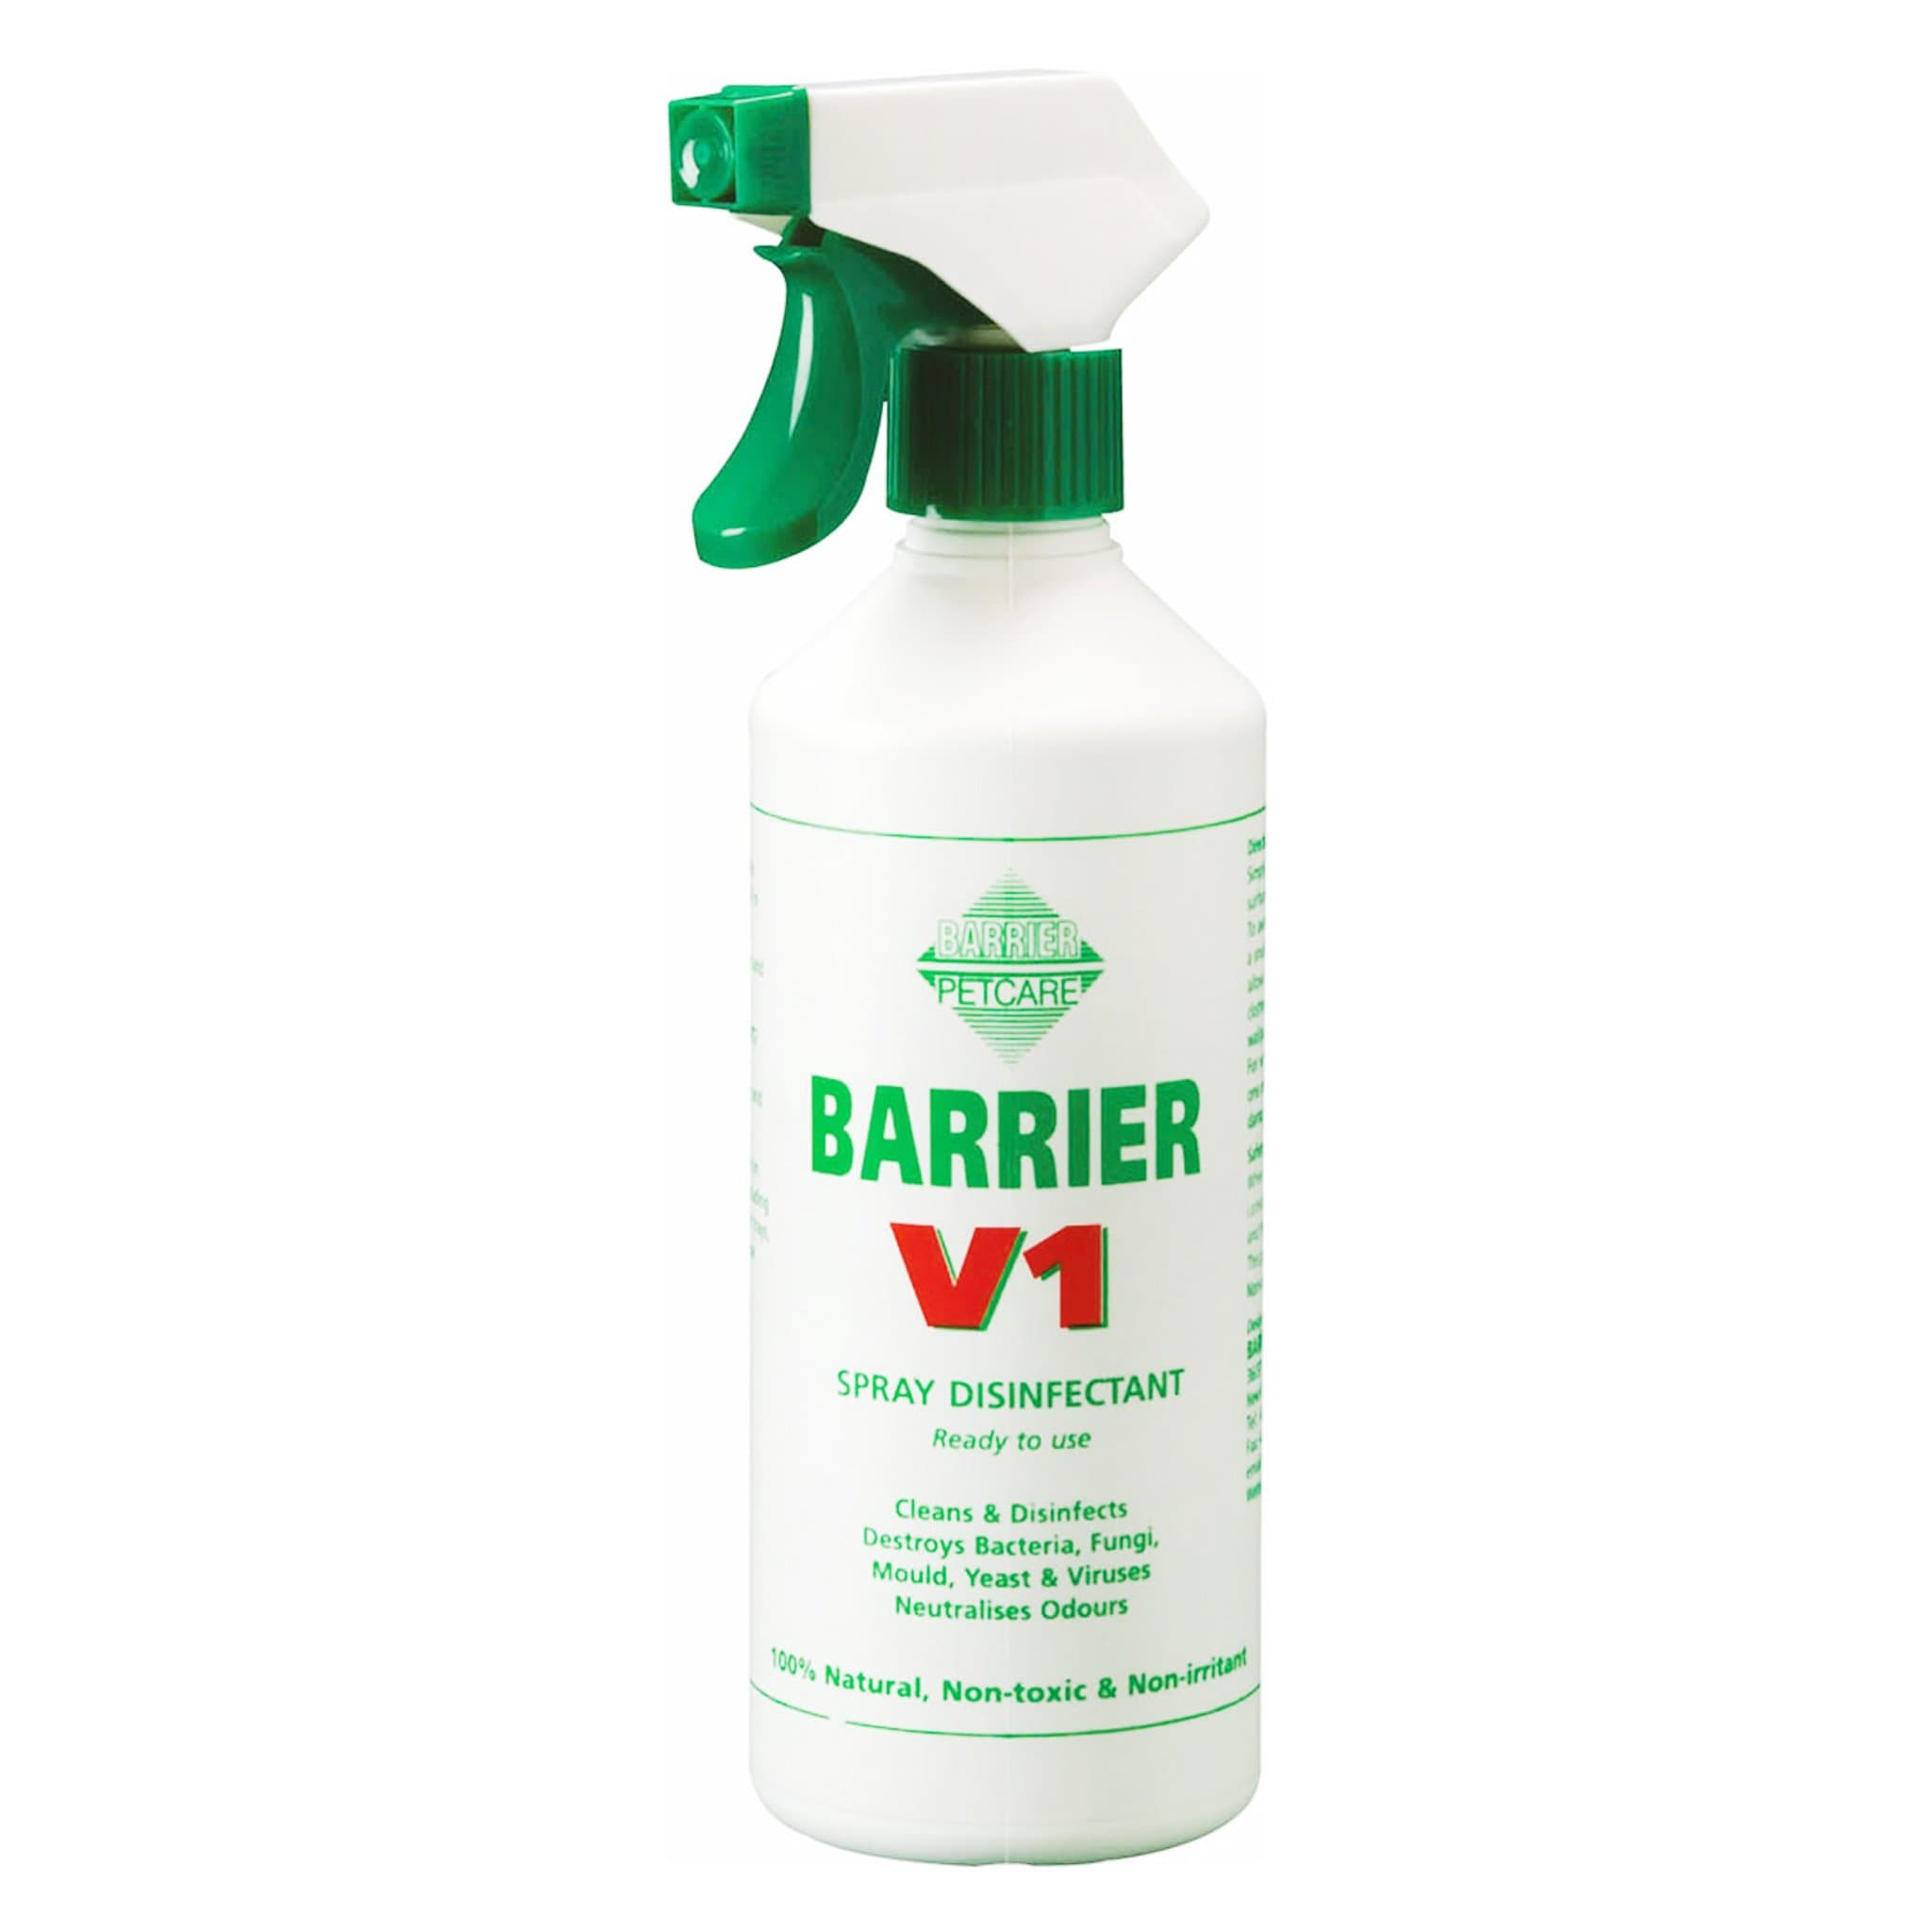 Barrier V1 Spray Disinfectant 8488